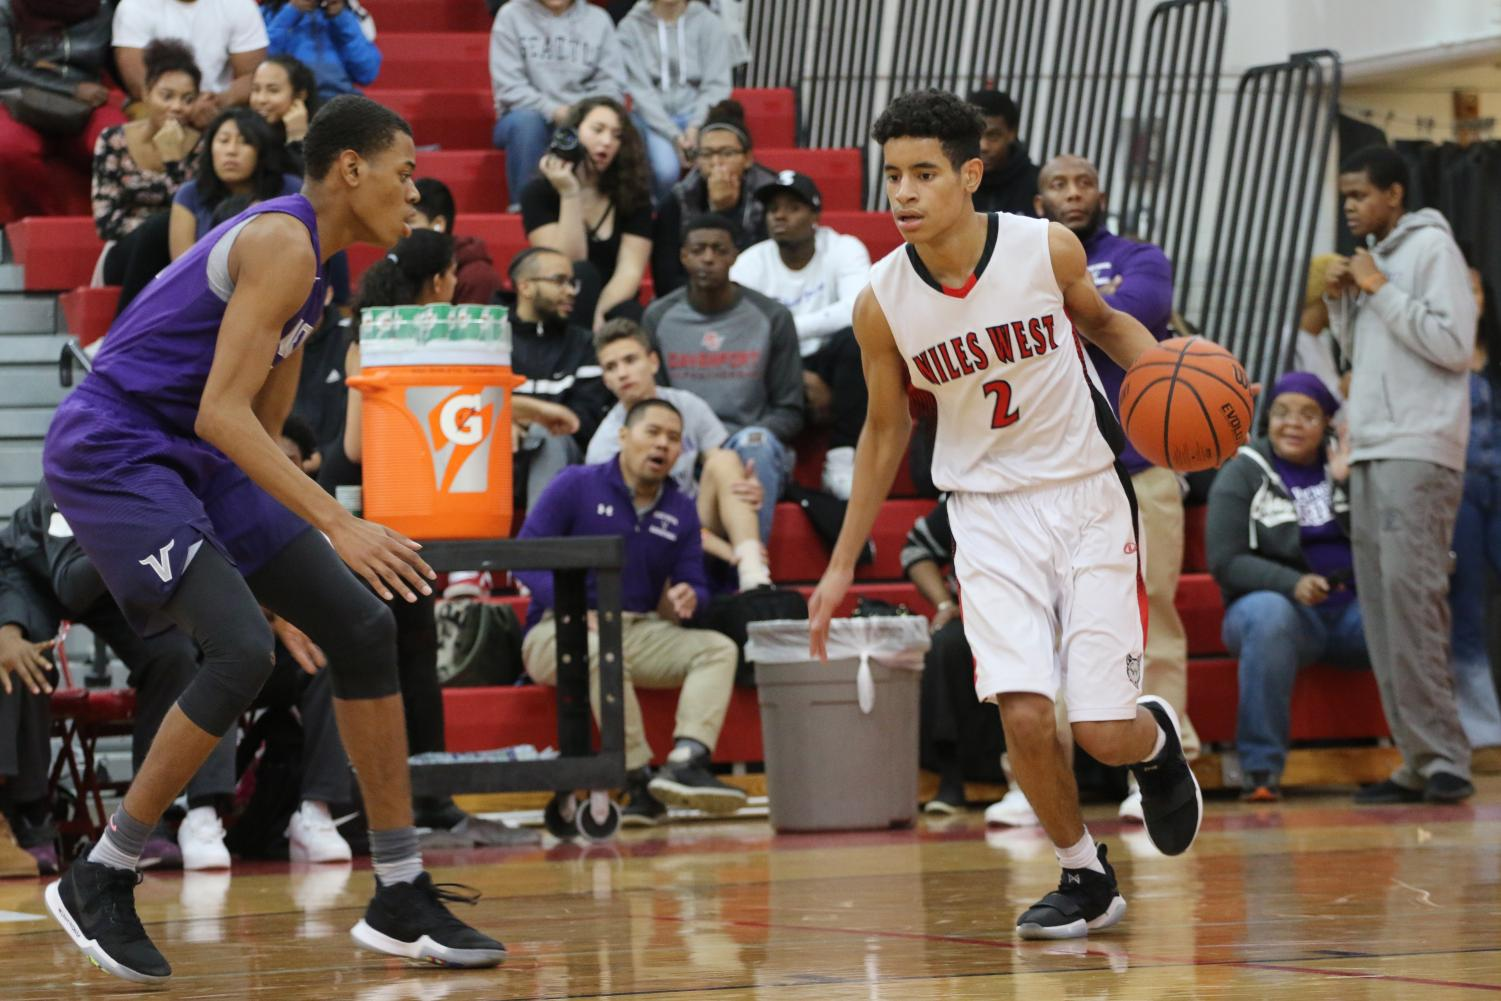 On Thursday, Nov. 30, the boys varsity basketball team had a tough loss against their